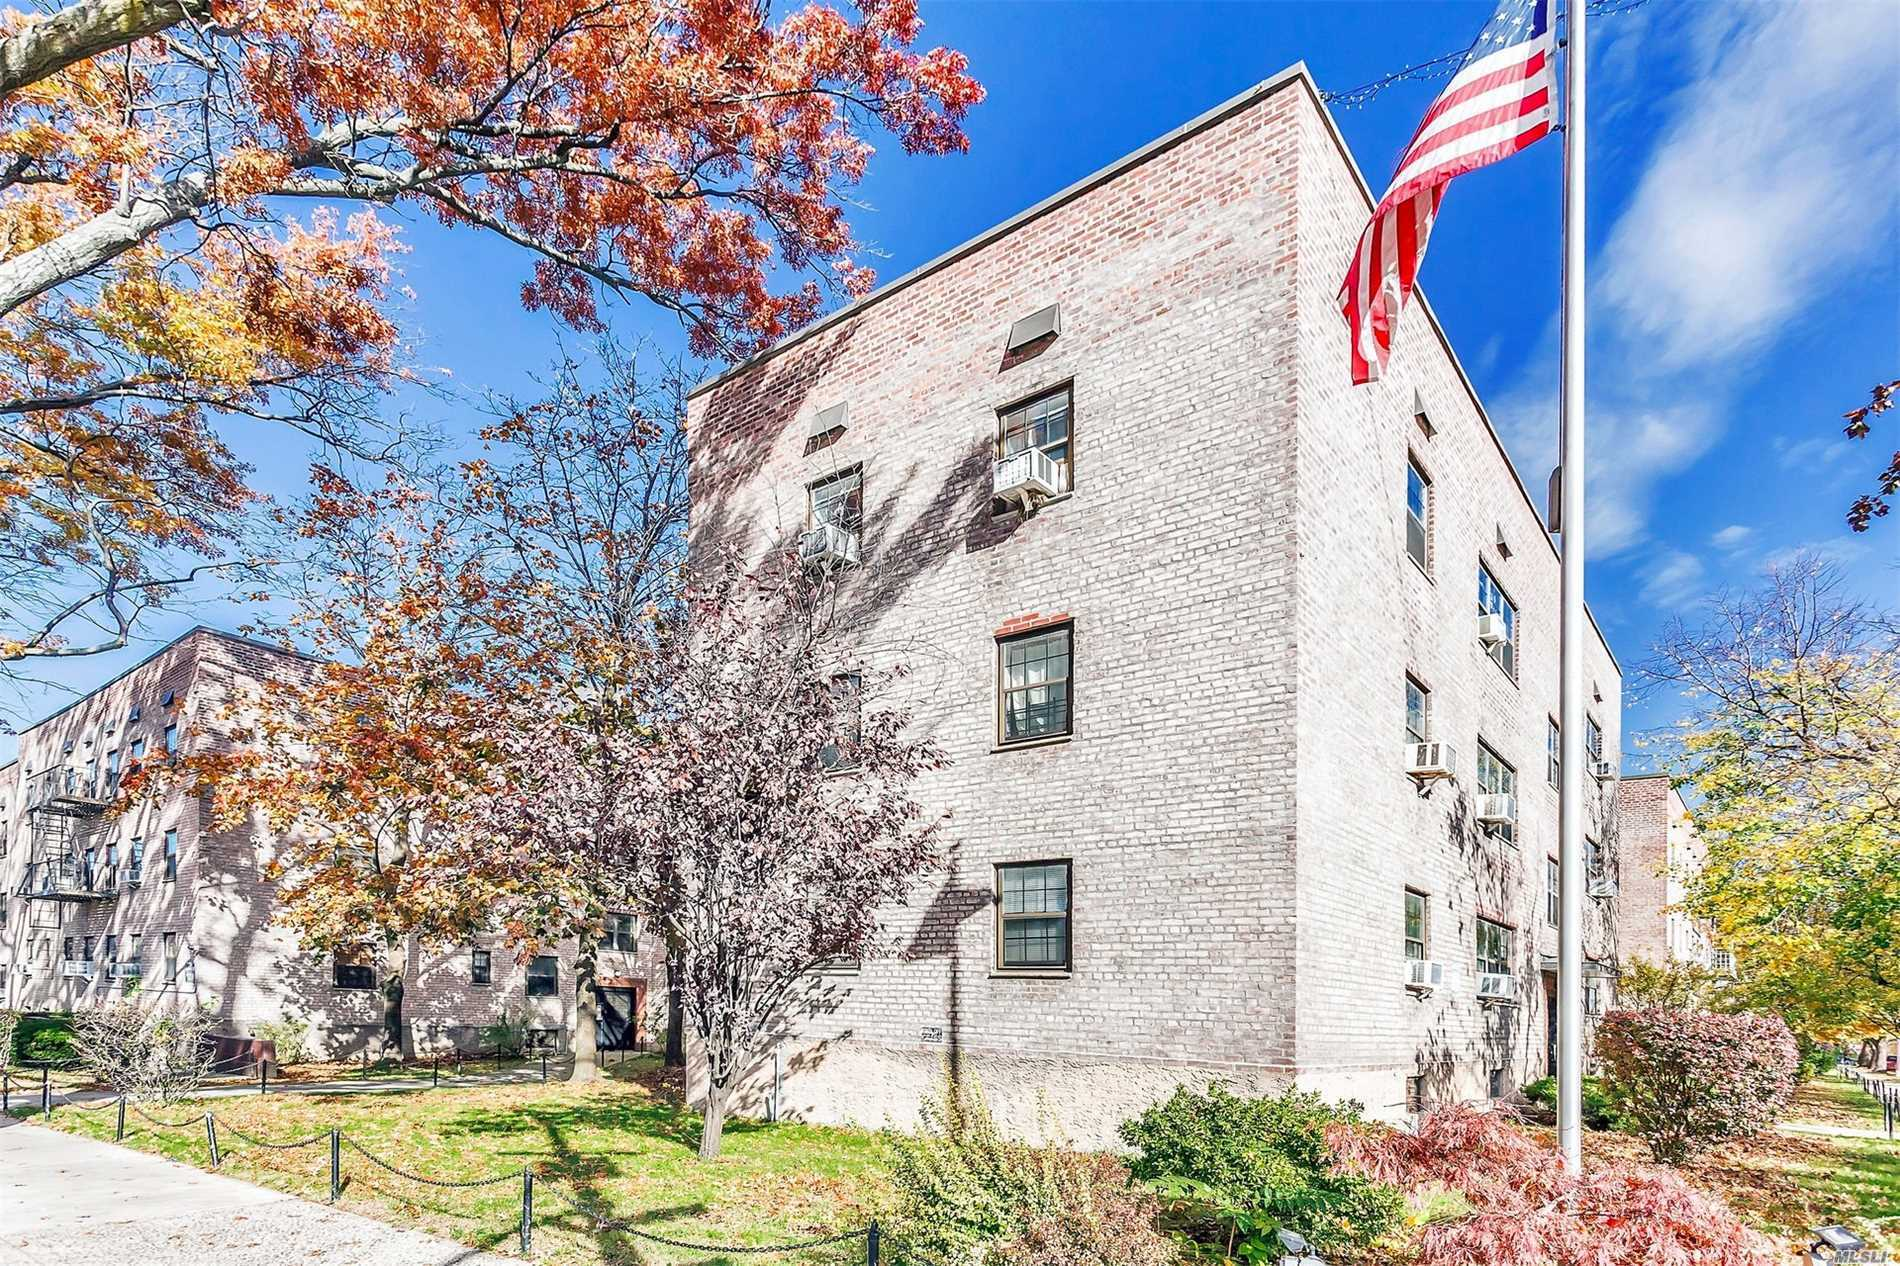 Price Improvement! Spacious Move-In Ready 1 Bedroom Co-Op, Awaiting Your Finishing Touches. Stellar Location, Close To All With Bus Stop Directly Outside. Large Storage Unit Available And Laundry Onsite.